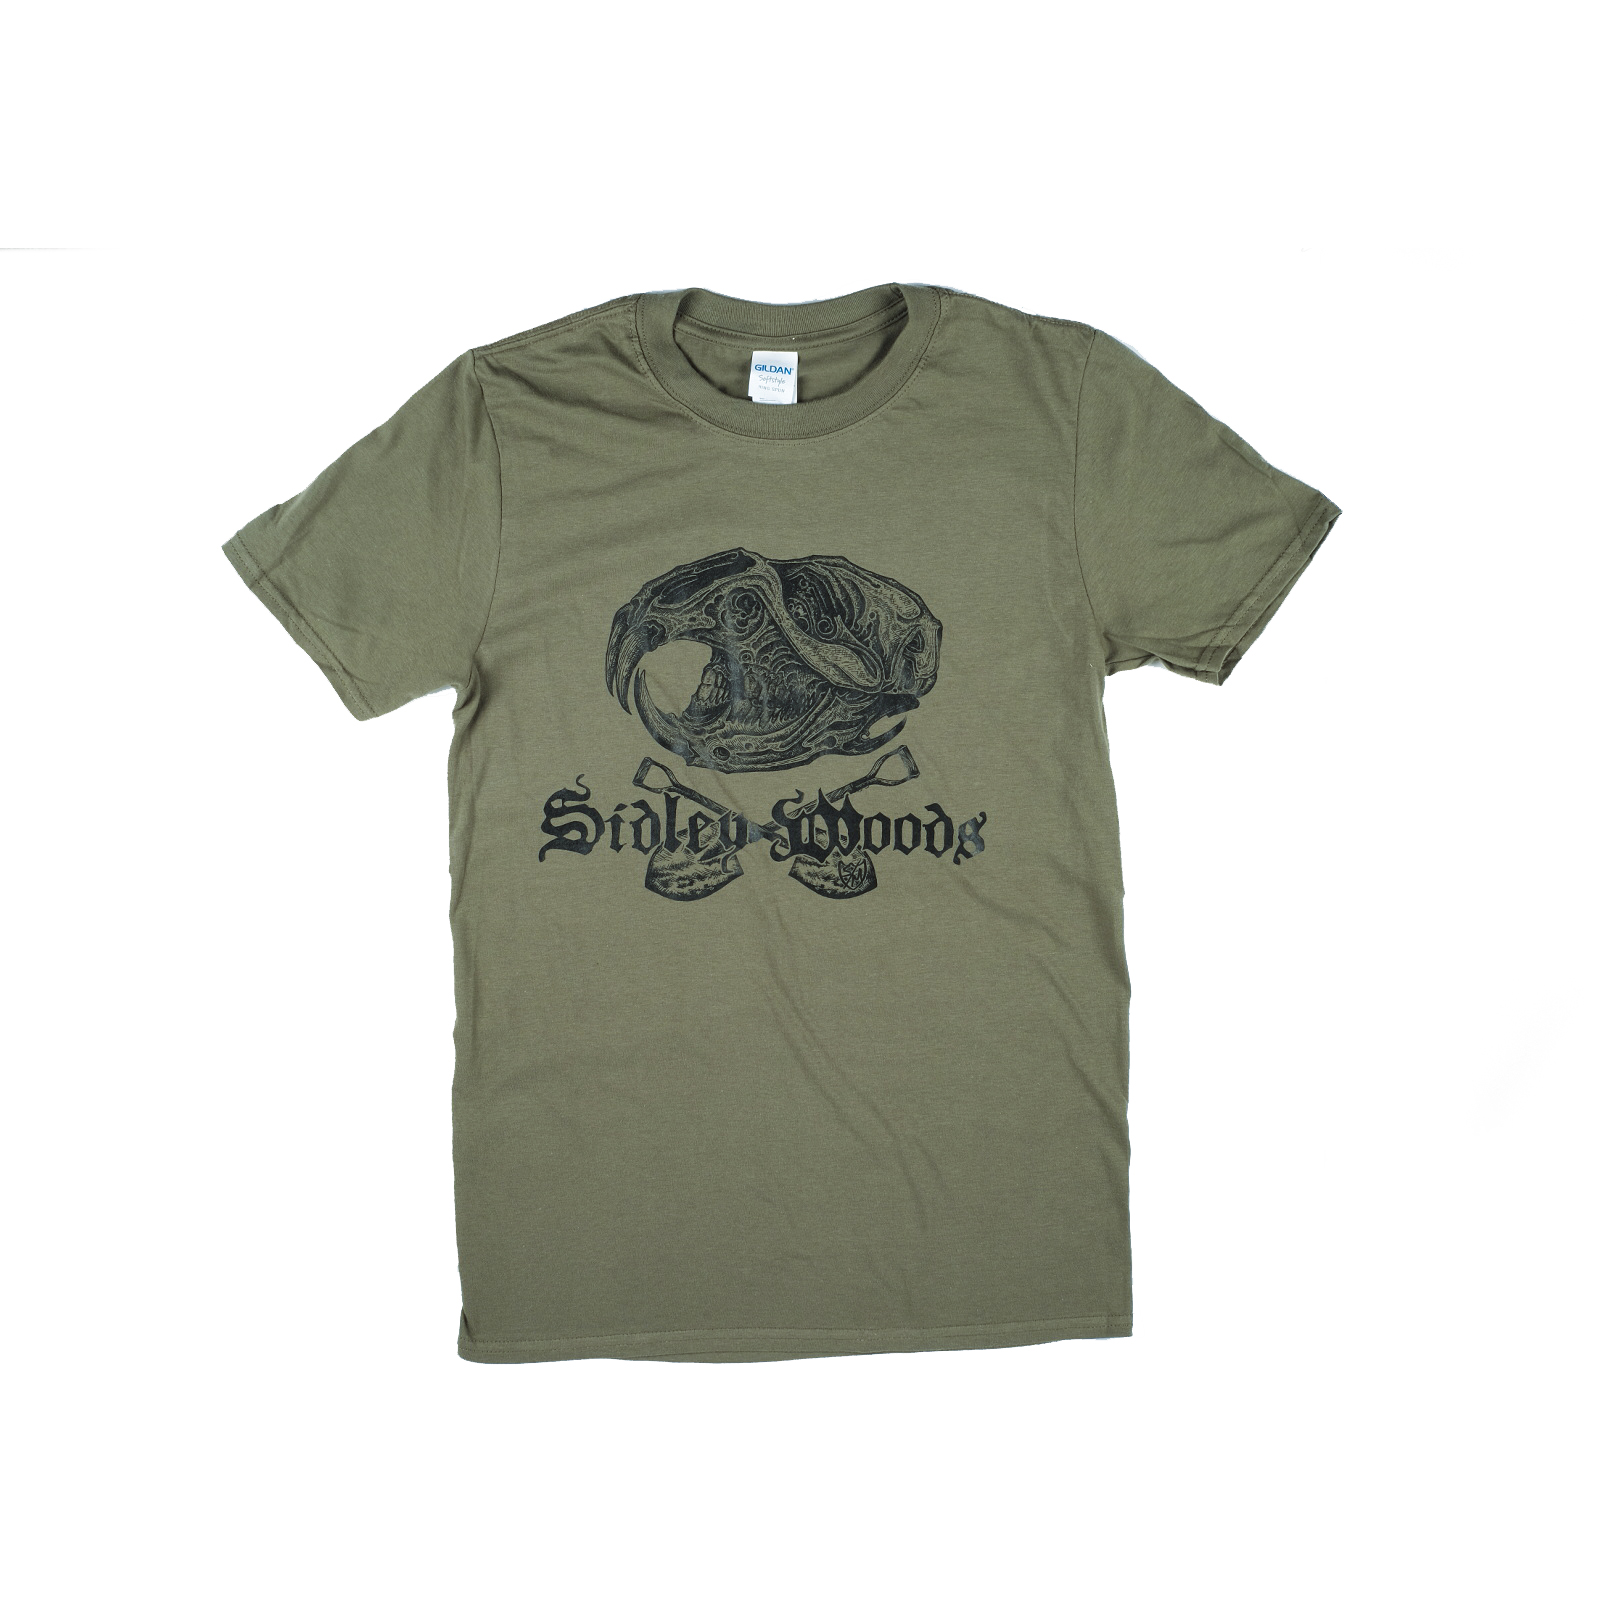 Sidley Woods T-Shirt Forest Green Large